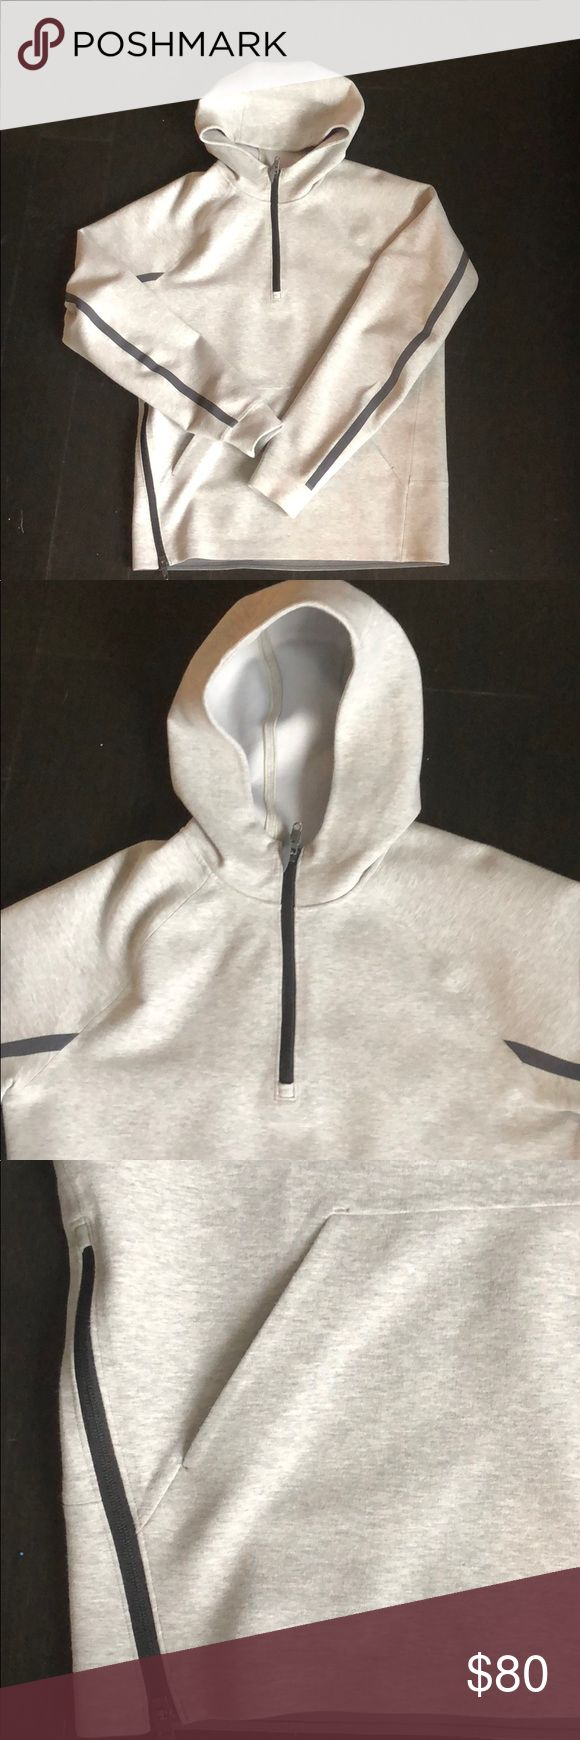 Lululemon Lululemon Chamber Pullover Hoodie   https://shop.lululemon.com/p/mens-jackets-and-hoodies-hoodies/Chamber-Pullover-Hoodie/_/prod640076?rcnt=54&N=87x&cnt=61&color=LM3E19S_1966 lululemon athletica Shirts Sweatshirts & Hoodies